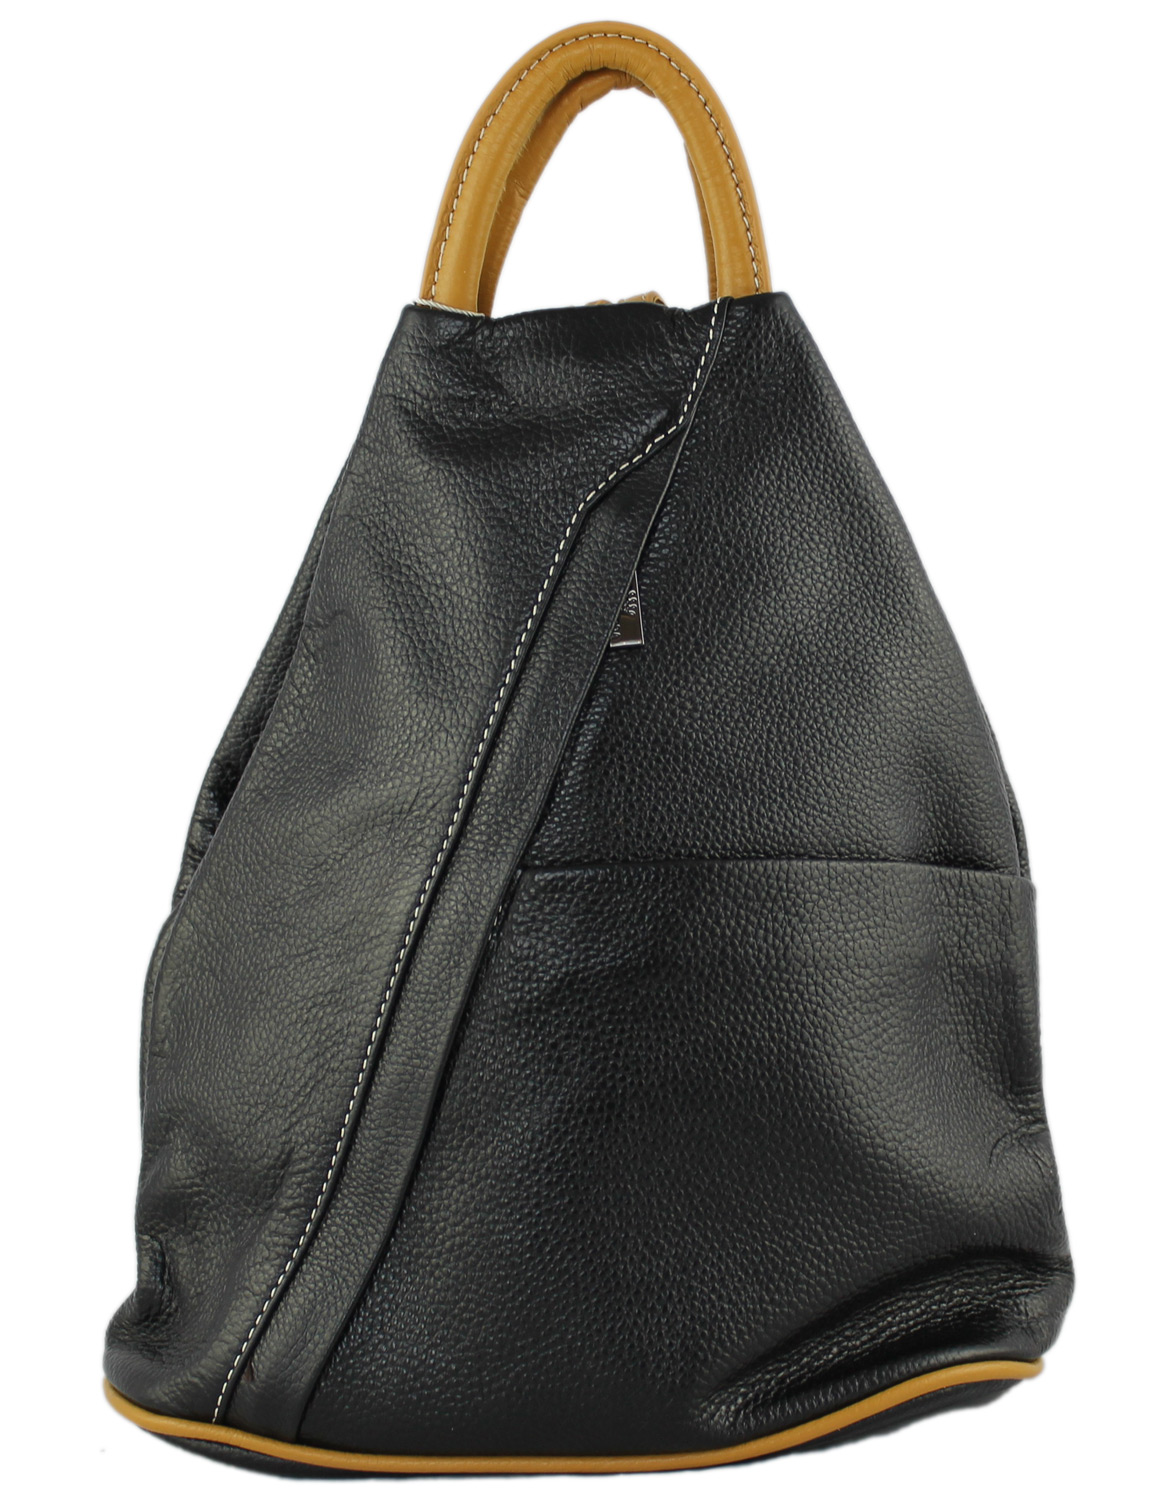 Tuscany Soft Leather Backpack in Black with Caramel Trim